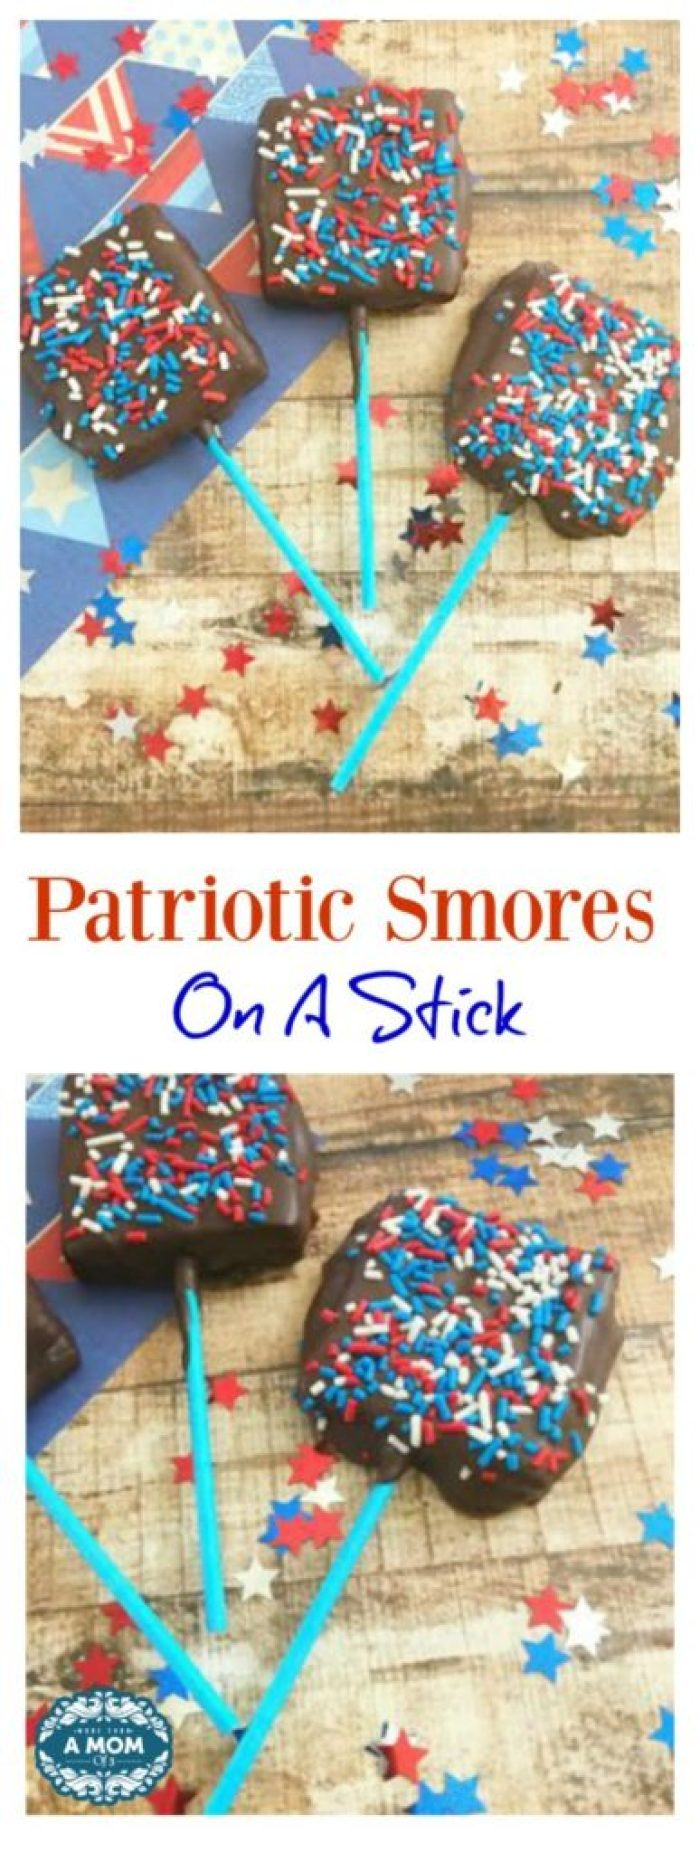 Patriotic Smores On A Stick For Memorial Day